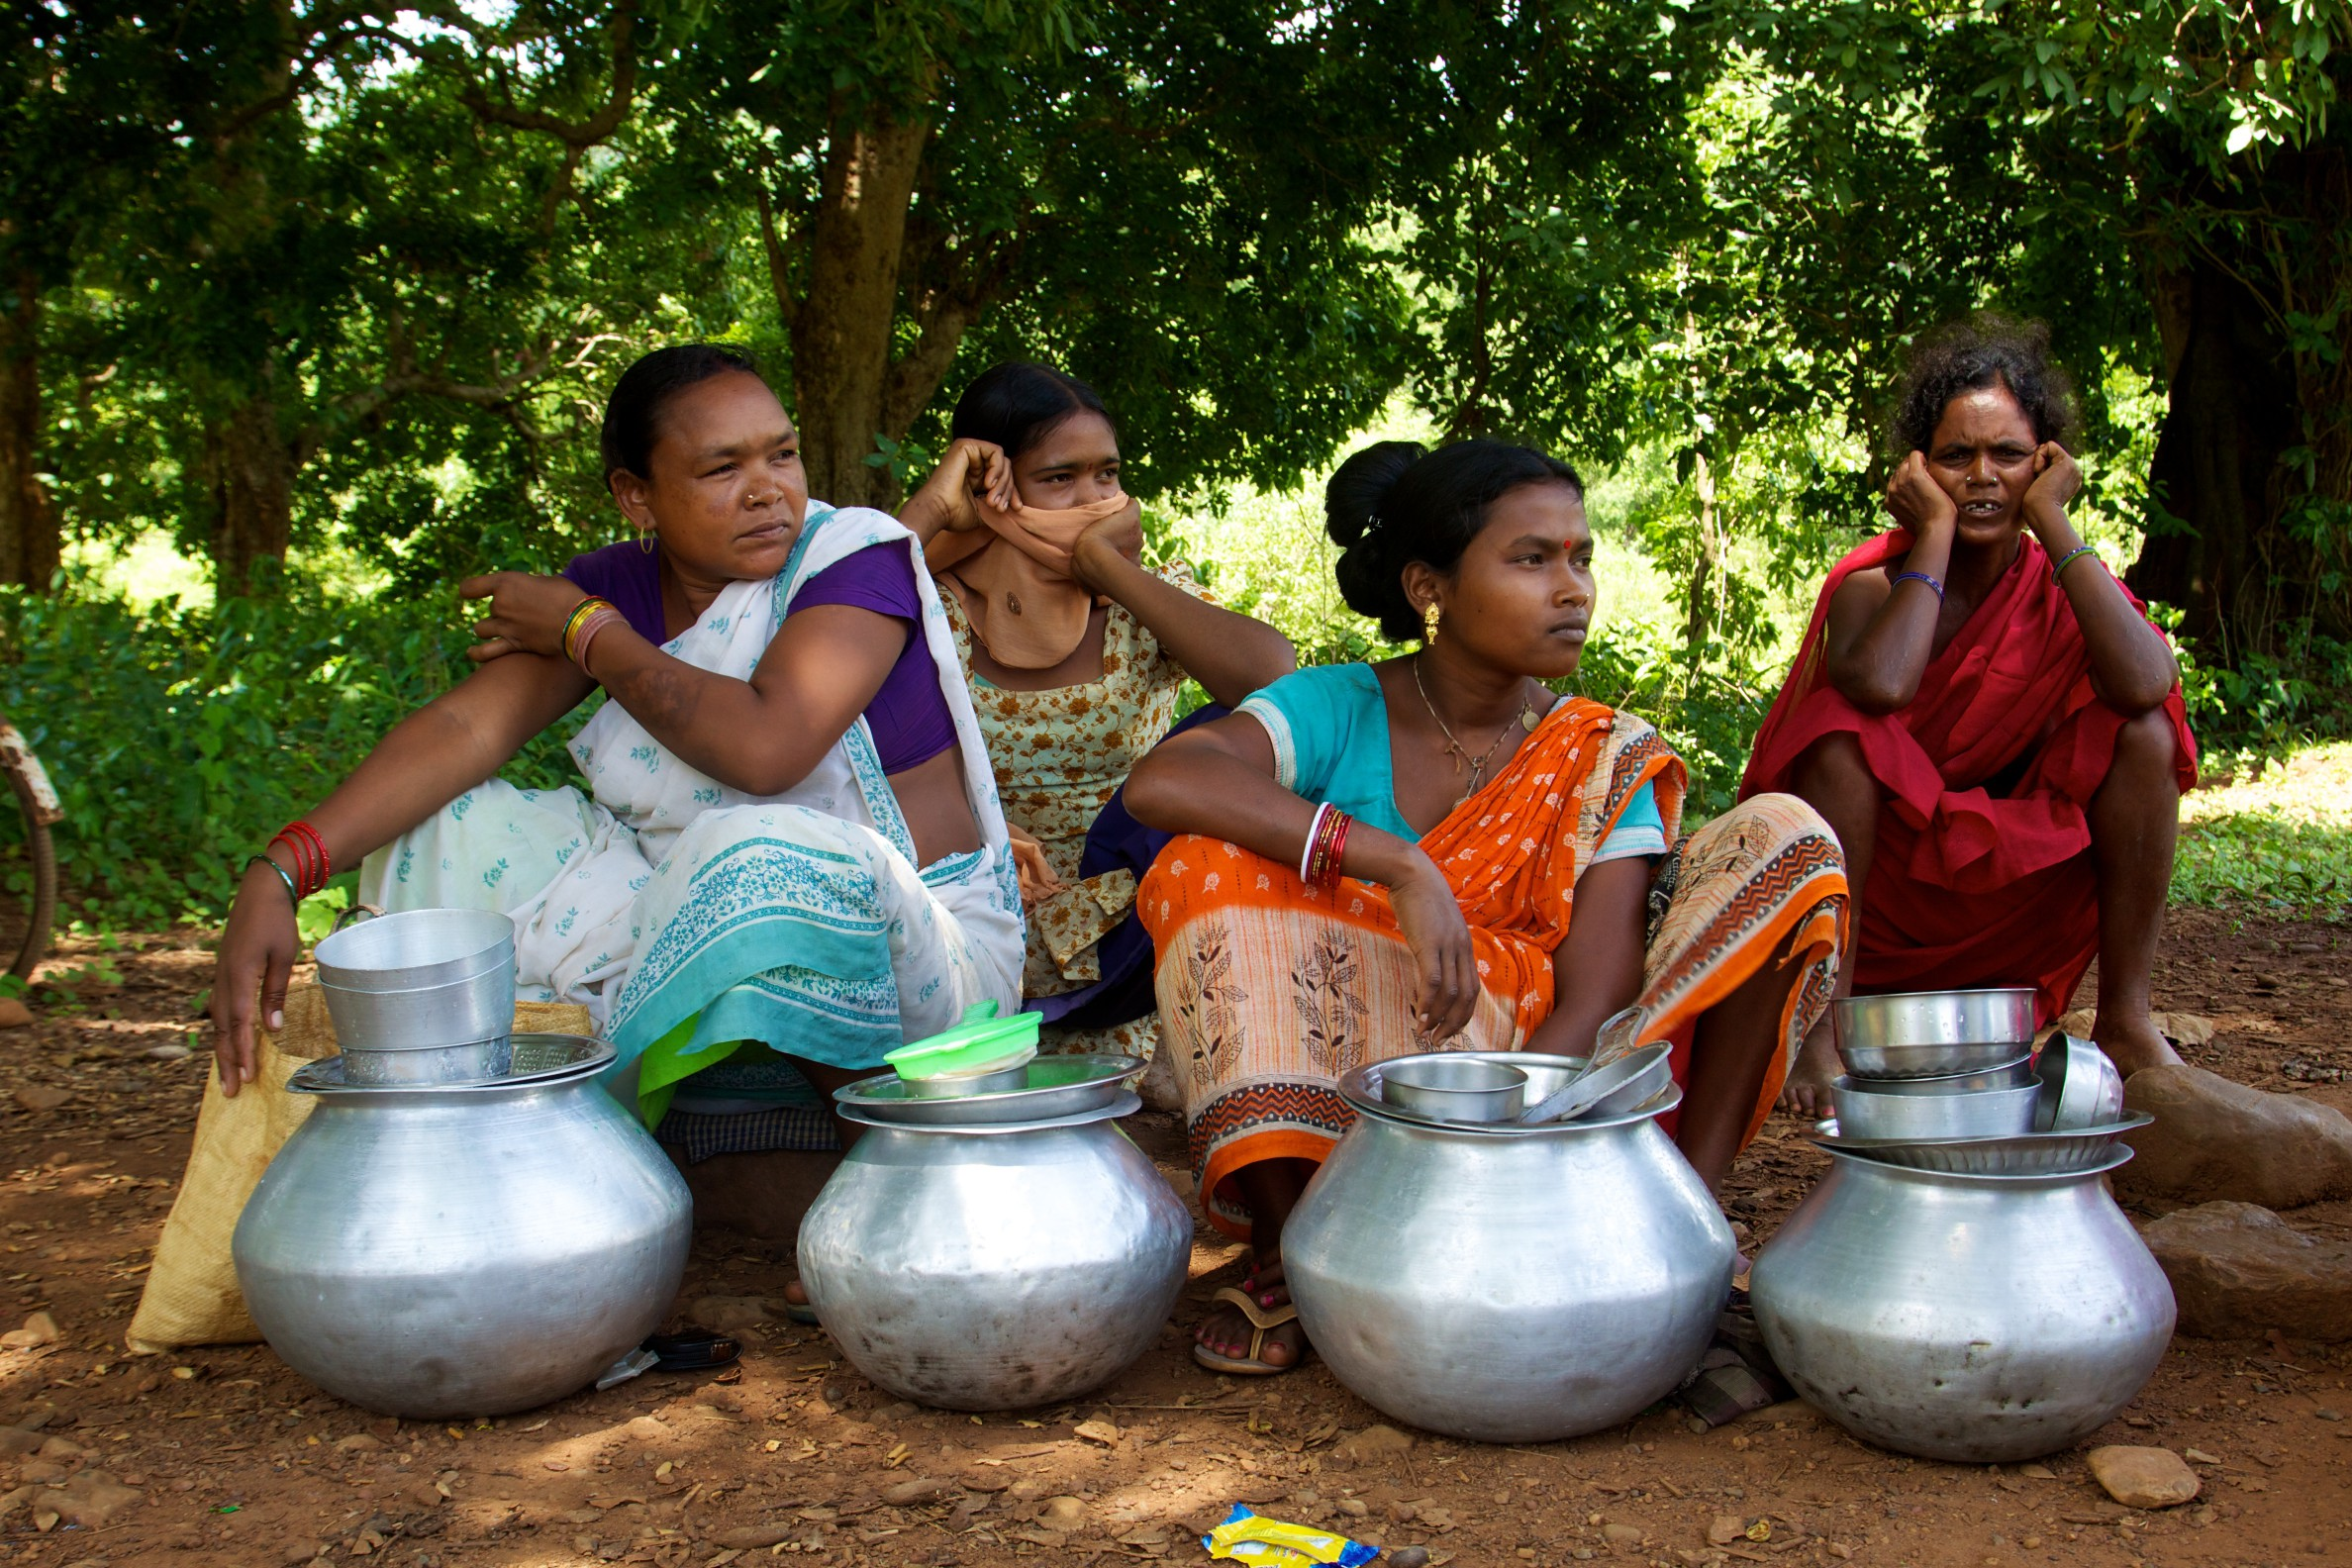 4 women sitting with metal pots